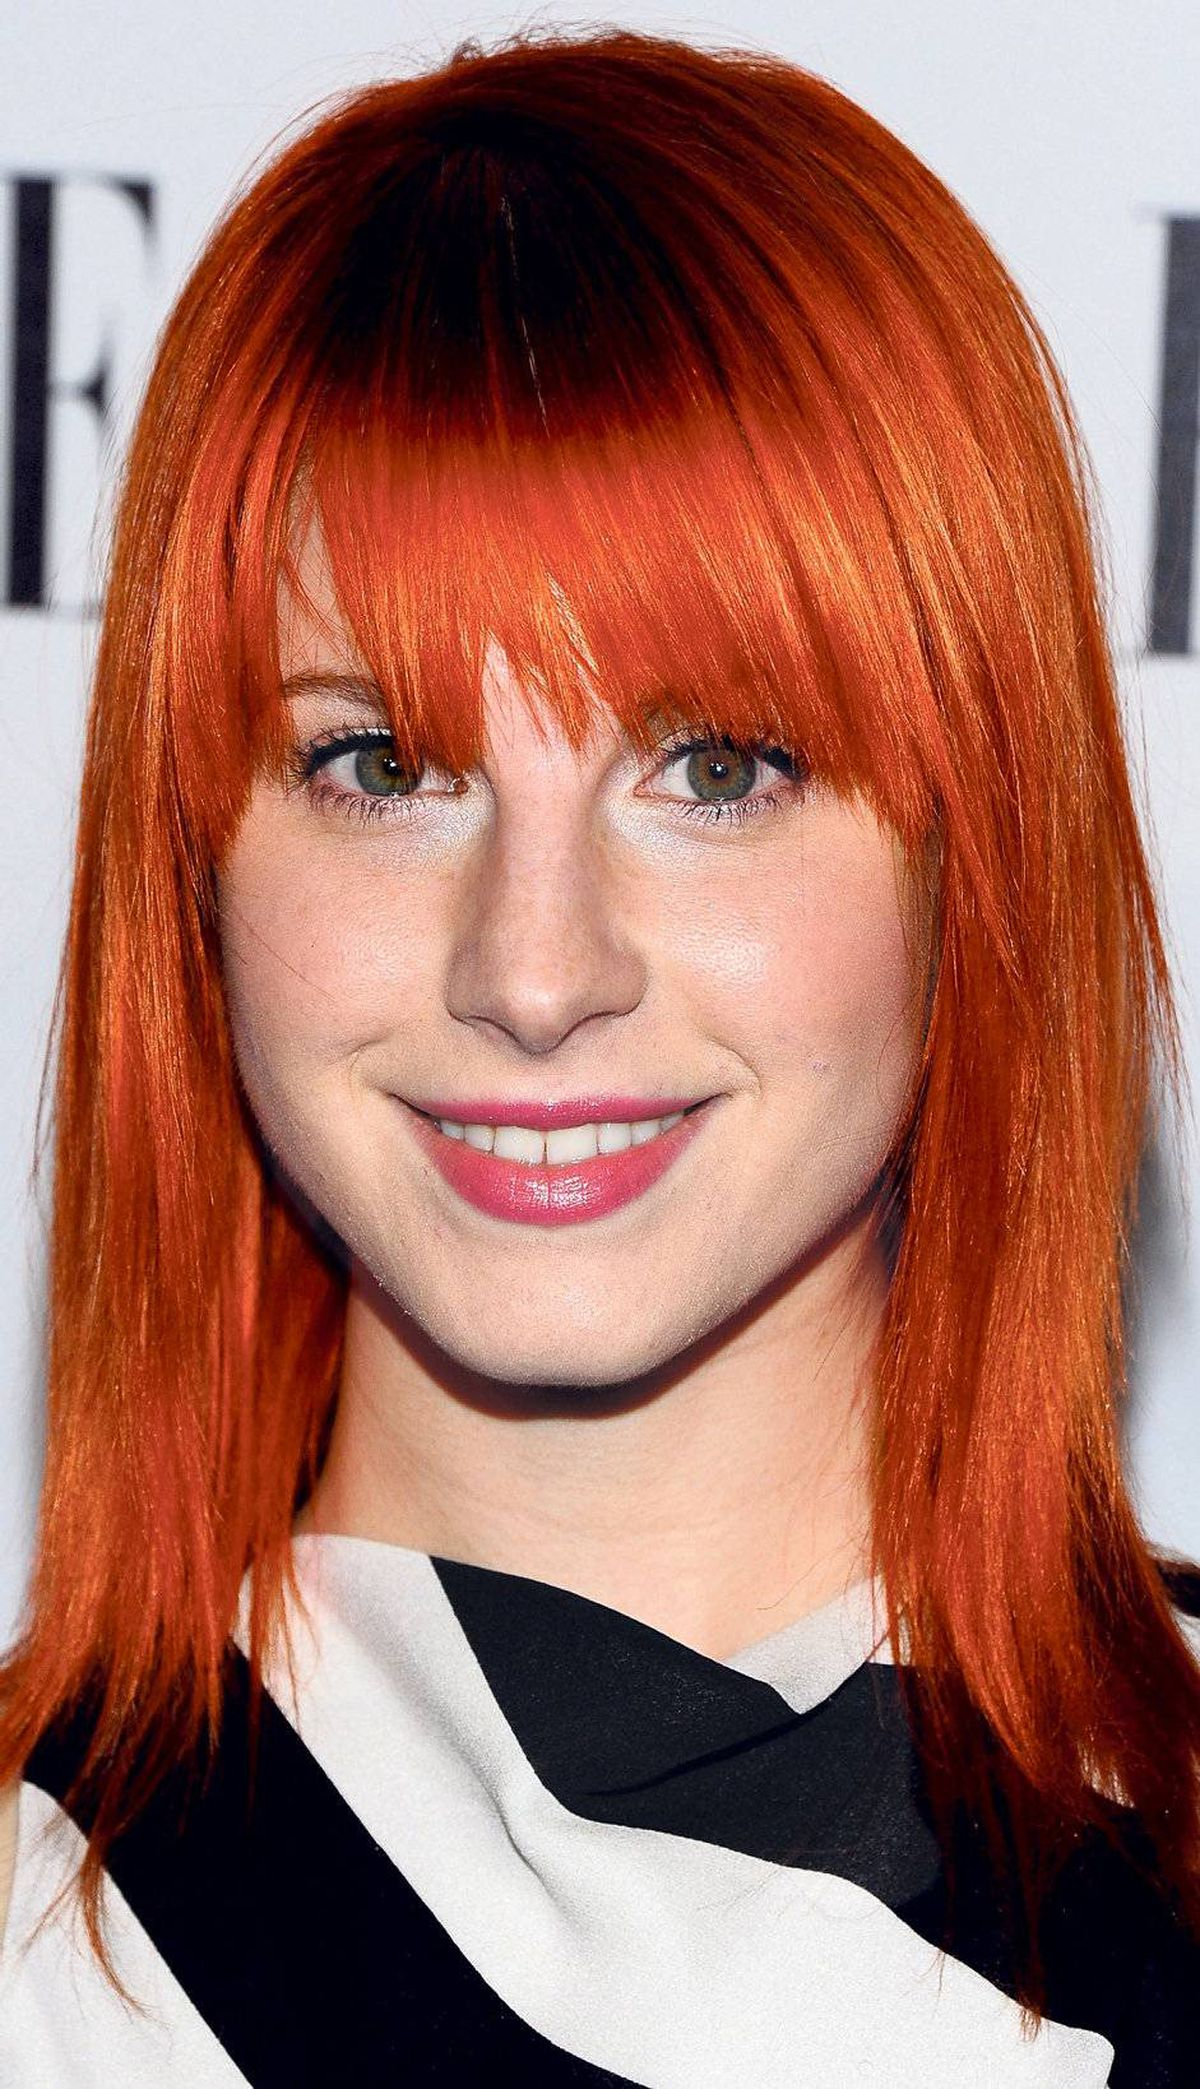 Hayley Williams: Fruity hue